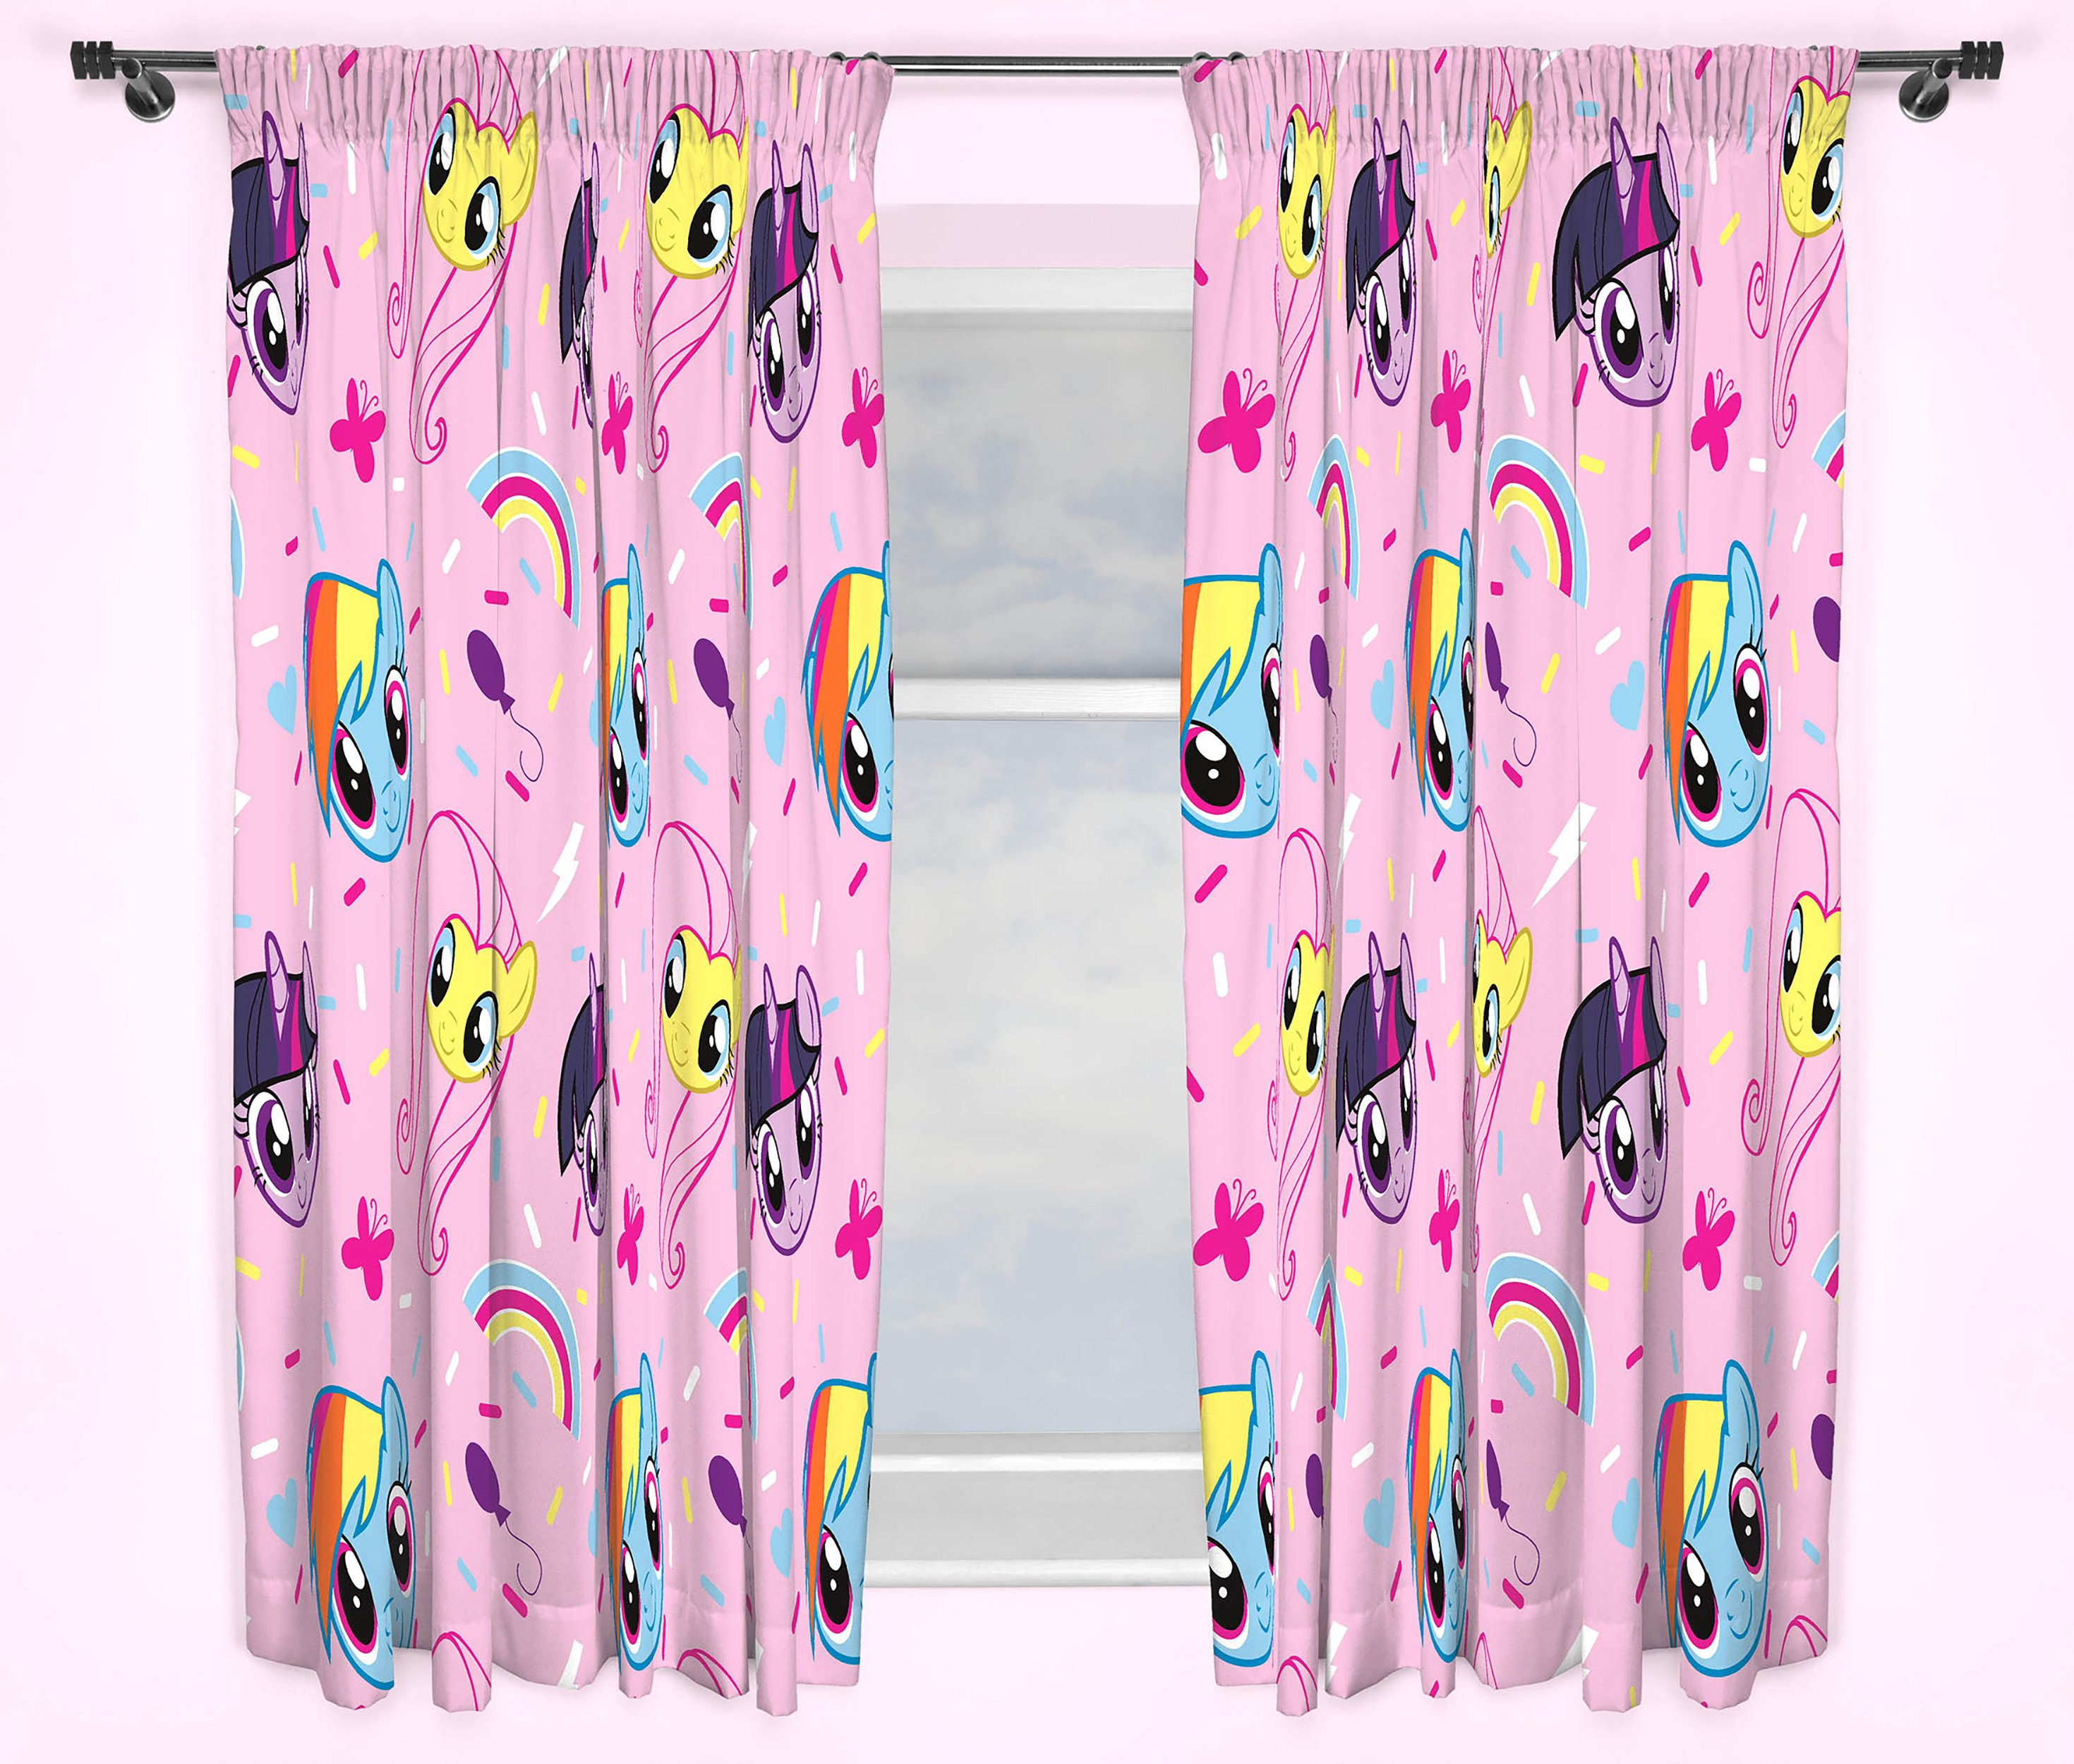 My Little Pony Unlined Pencil Pleat Curtains 168x137cm : 5219119RZ001A from furniturecompare.uk size 2939 x 2500 jpeg 843kB